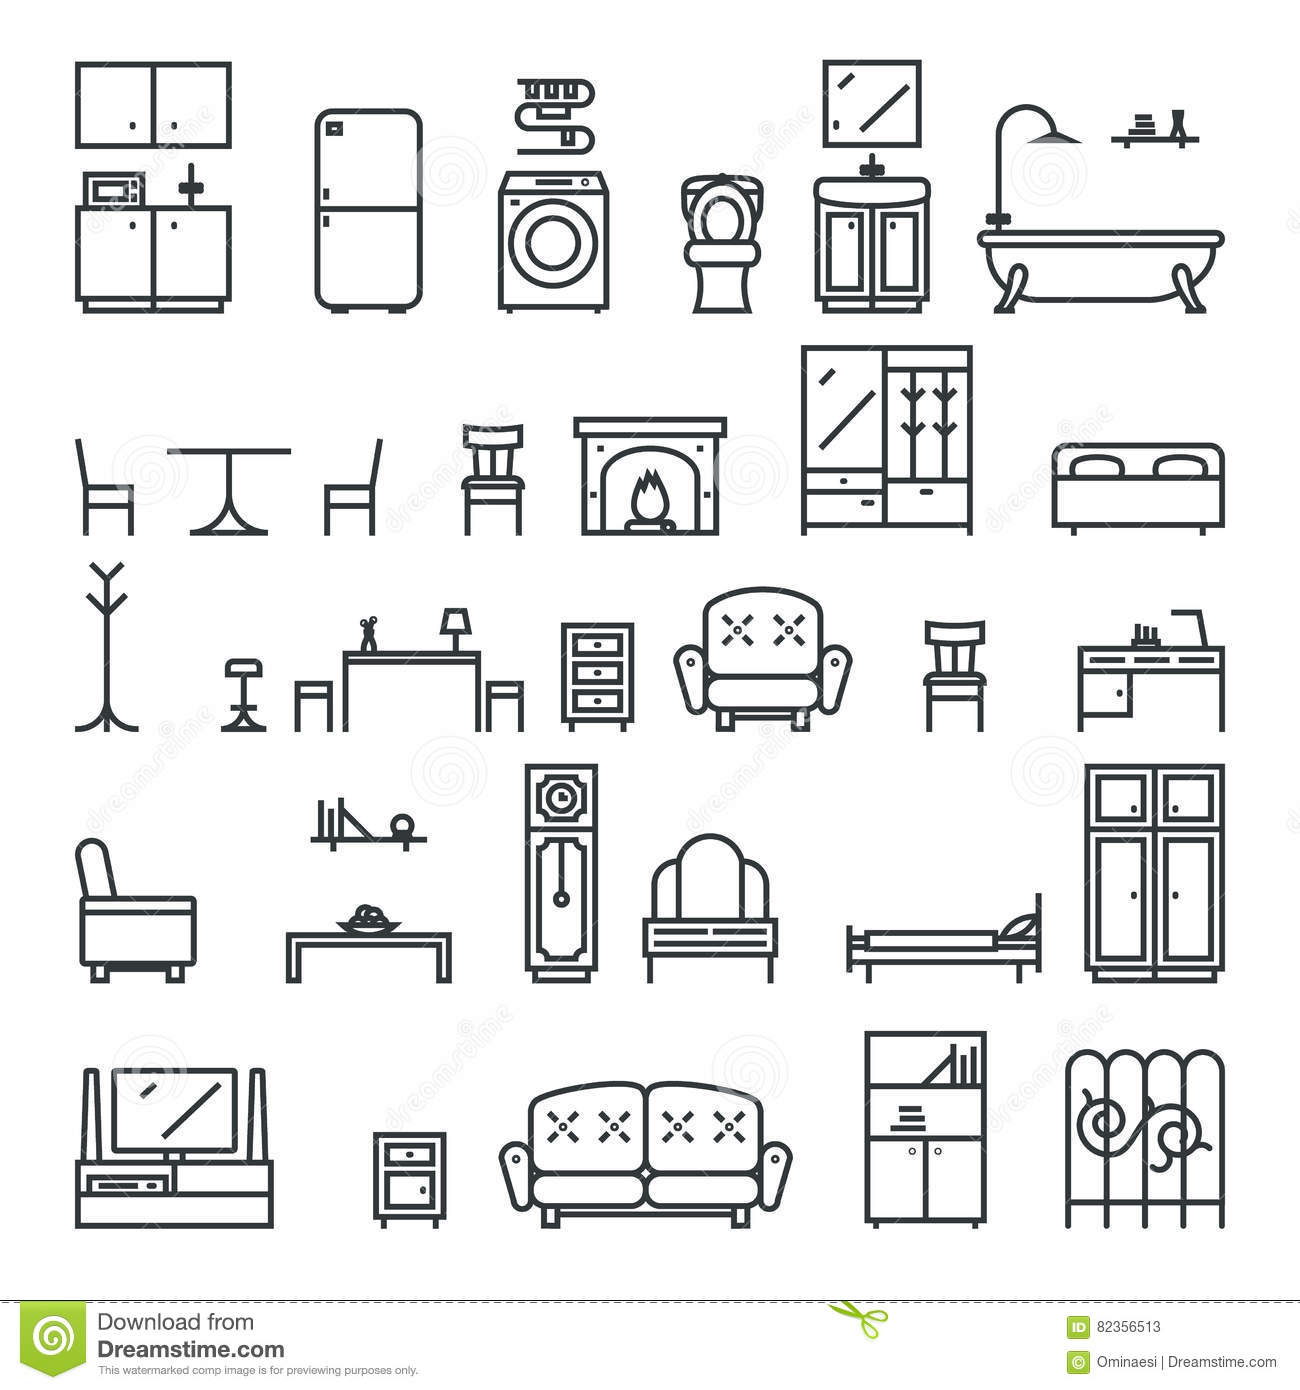 Flat furniture icons and symbols set for living room for Simbologia de planos arquitectonicos pdf